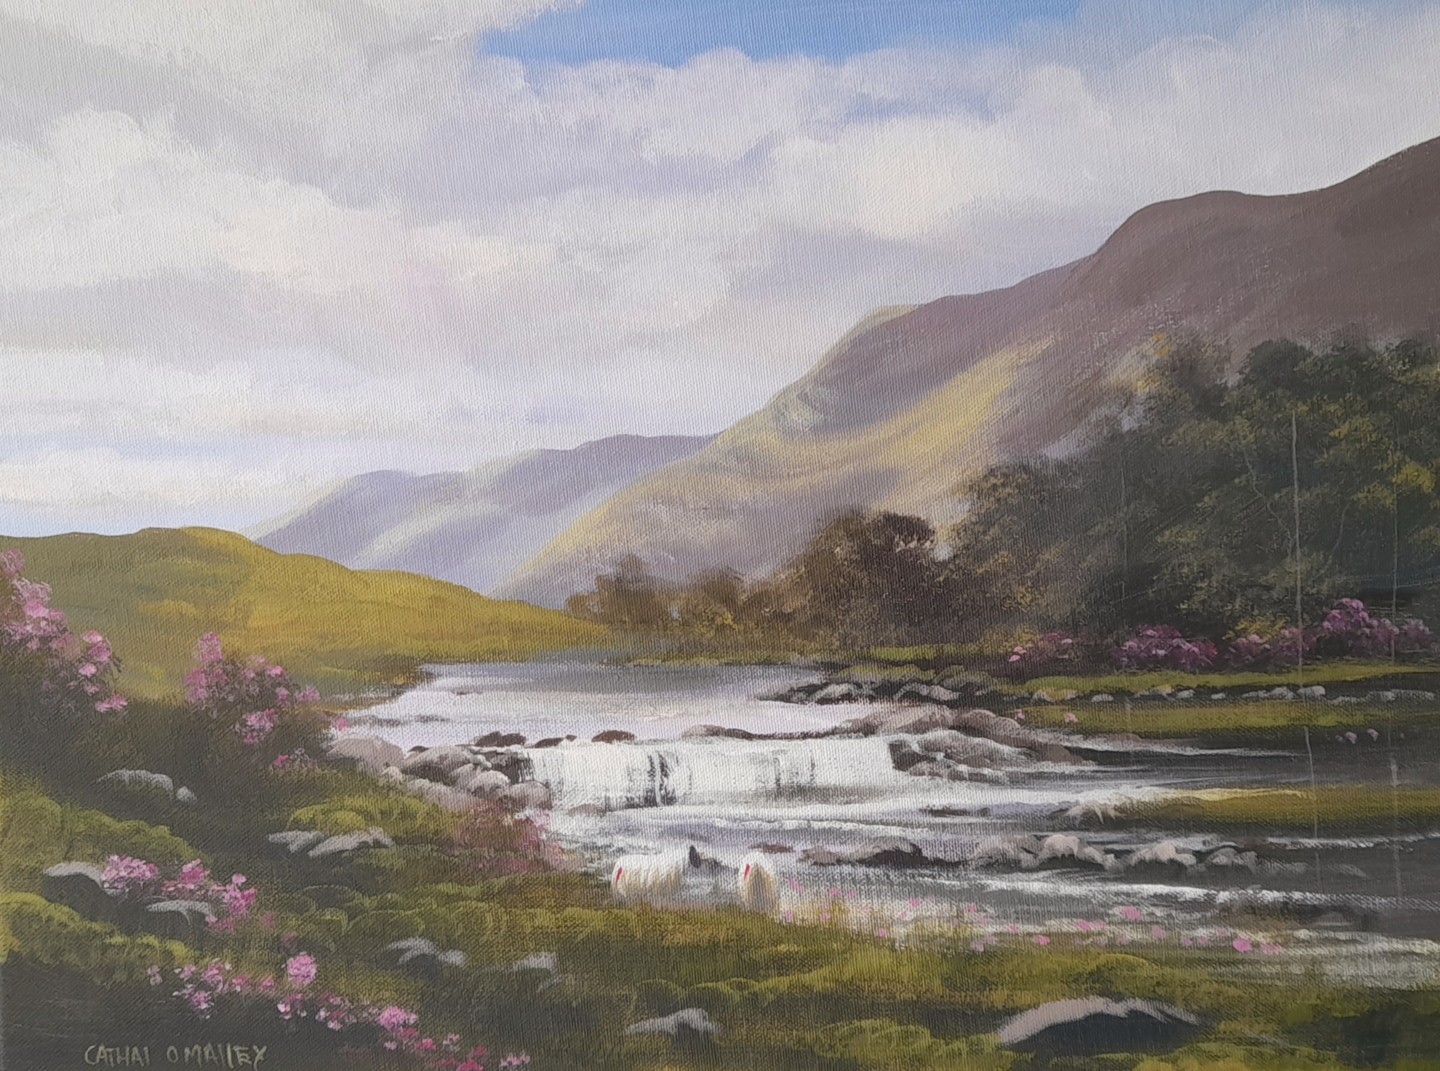 Cathal O Malley - Aasleagh falls,june